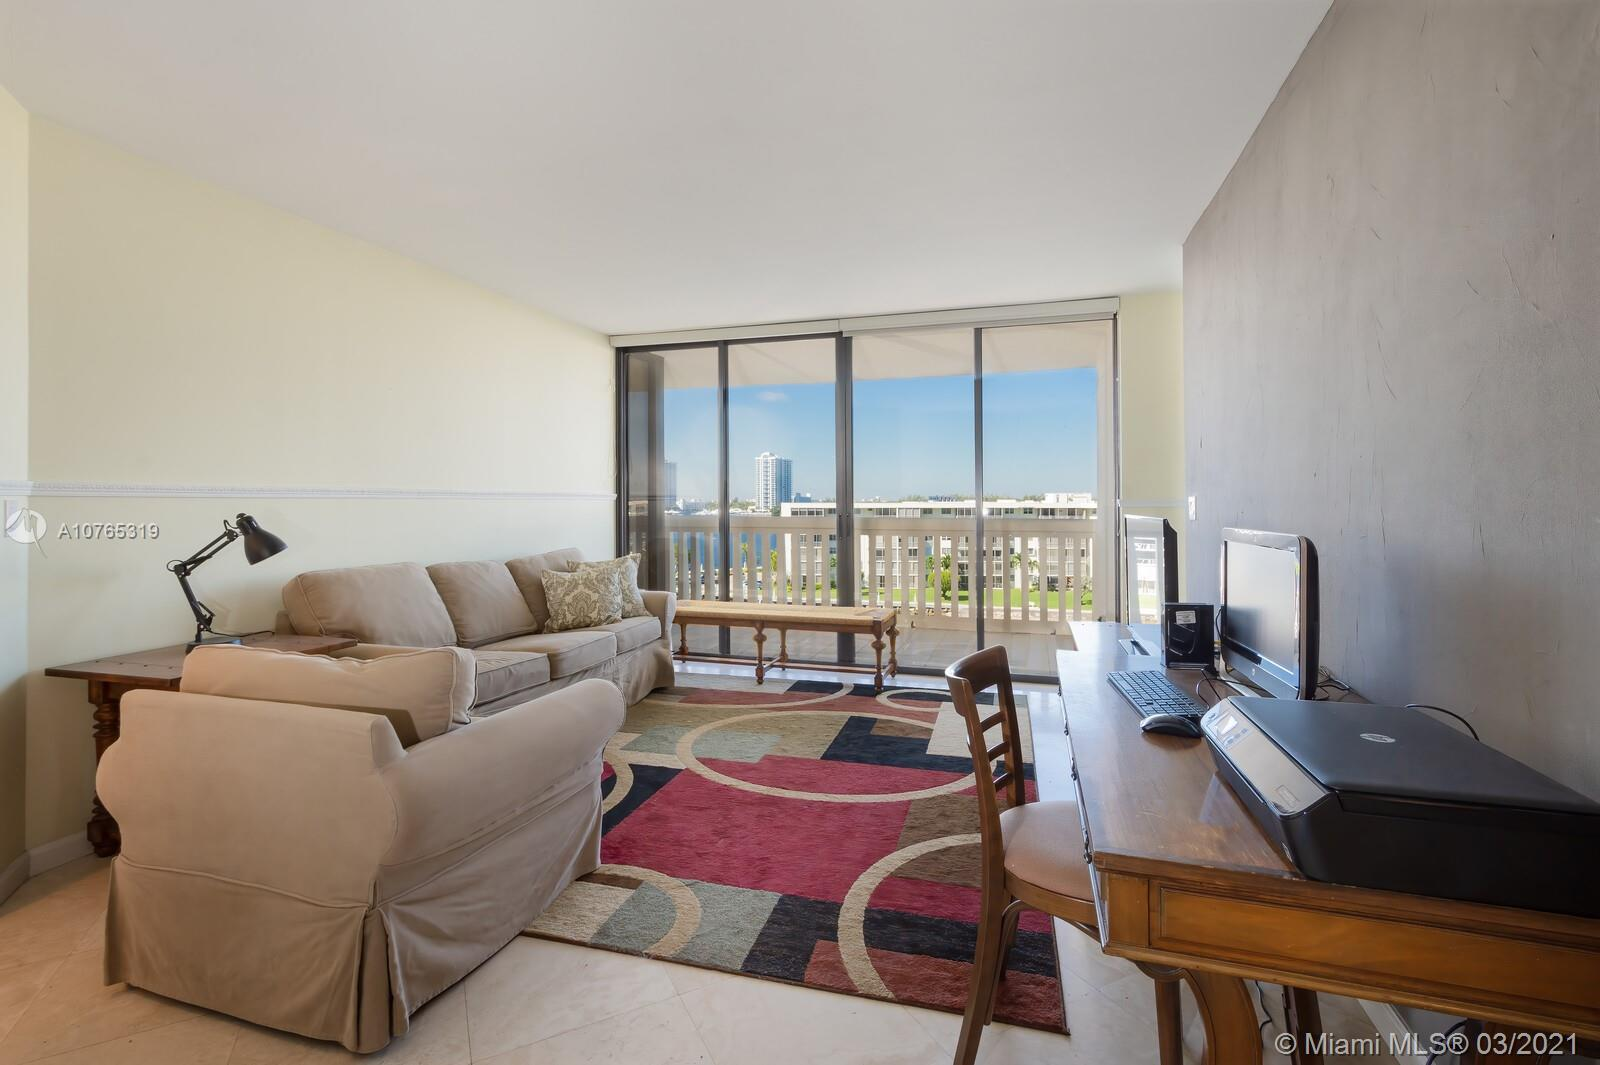 AMAZING WATER VIEW FROM EVERY ROOM. COMFORTABLE 2 BEDS 2 BATHS SPLIT ROOM. BUILDING FEATURES INCLUDE